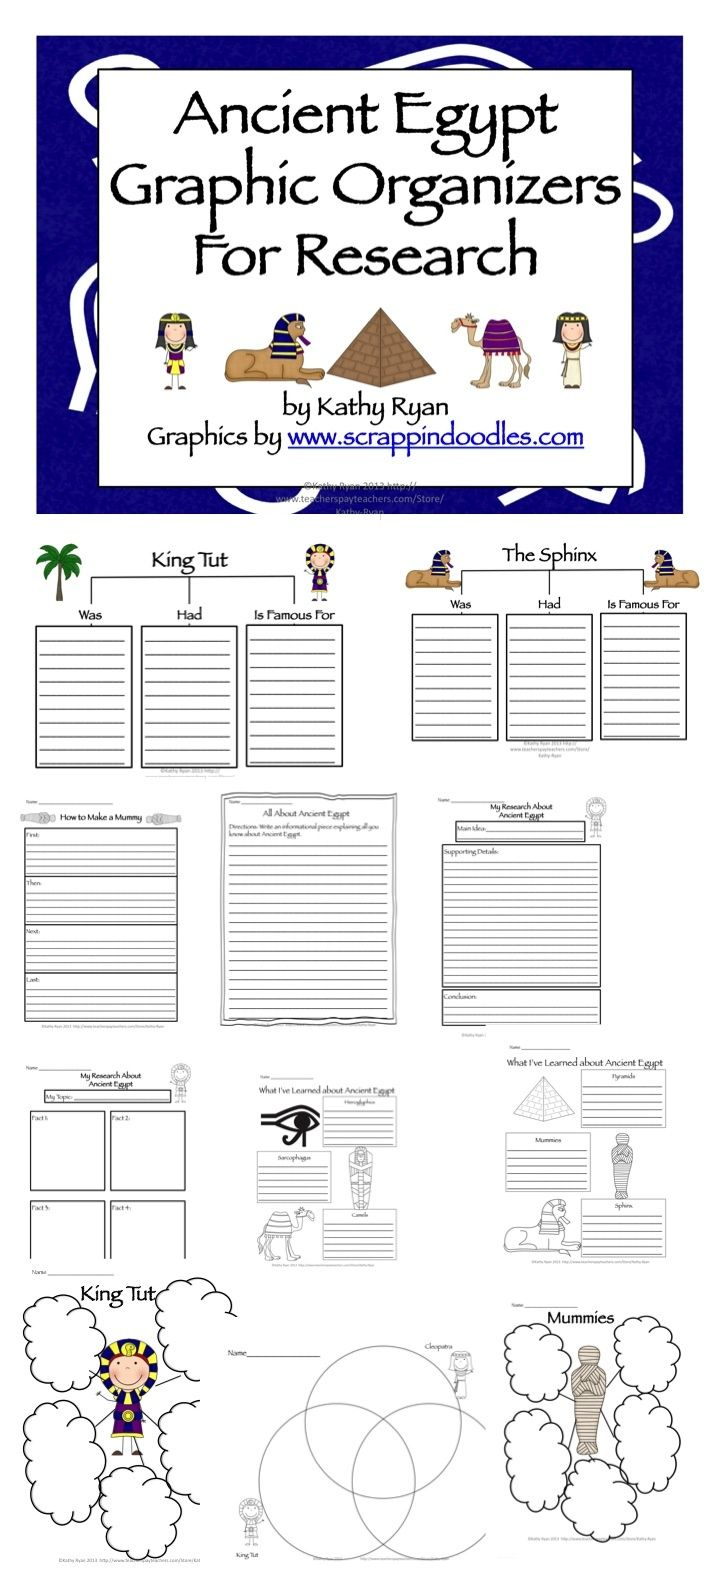 This packet contains everything you need to help your students with informational reading and writing about Ancient Egypt. There are over 50 differentiated graphic organizers and writing templates for students to use while they are studying Ancient Egypt.: